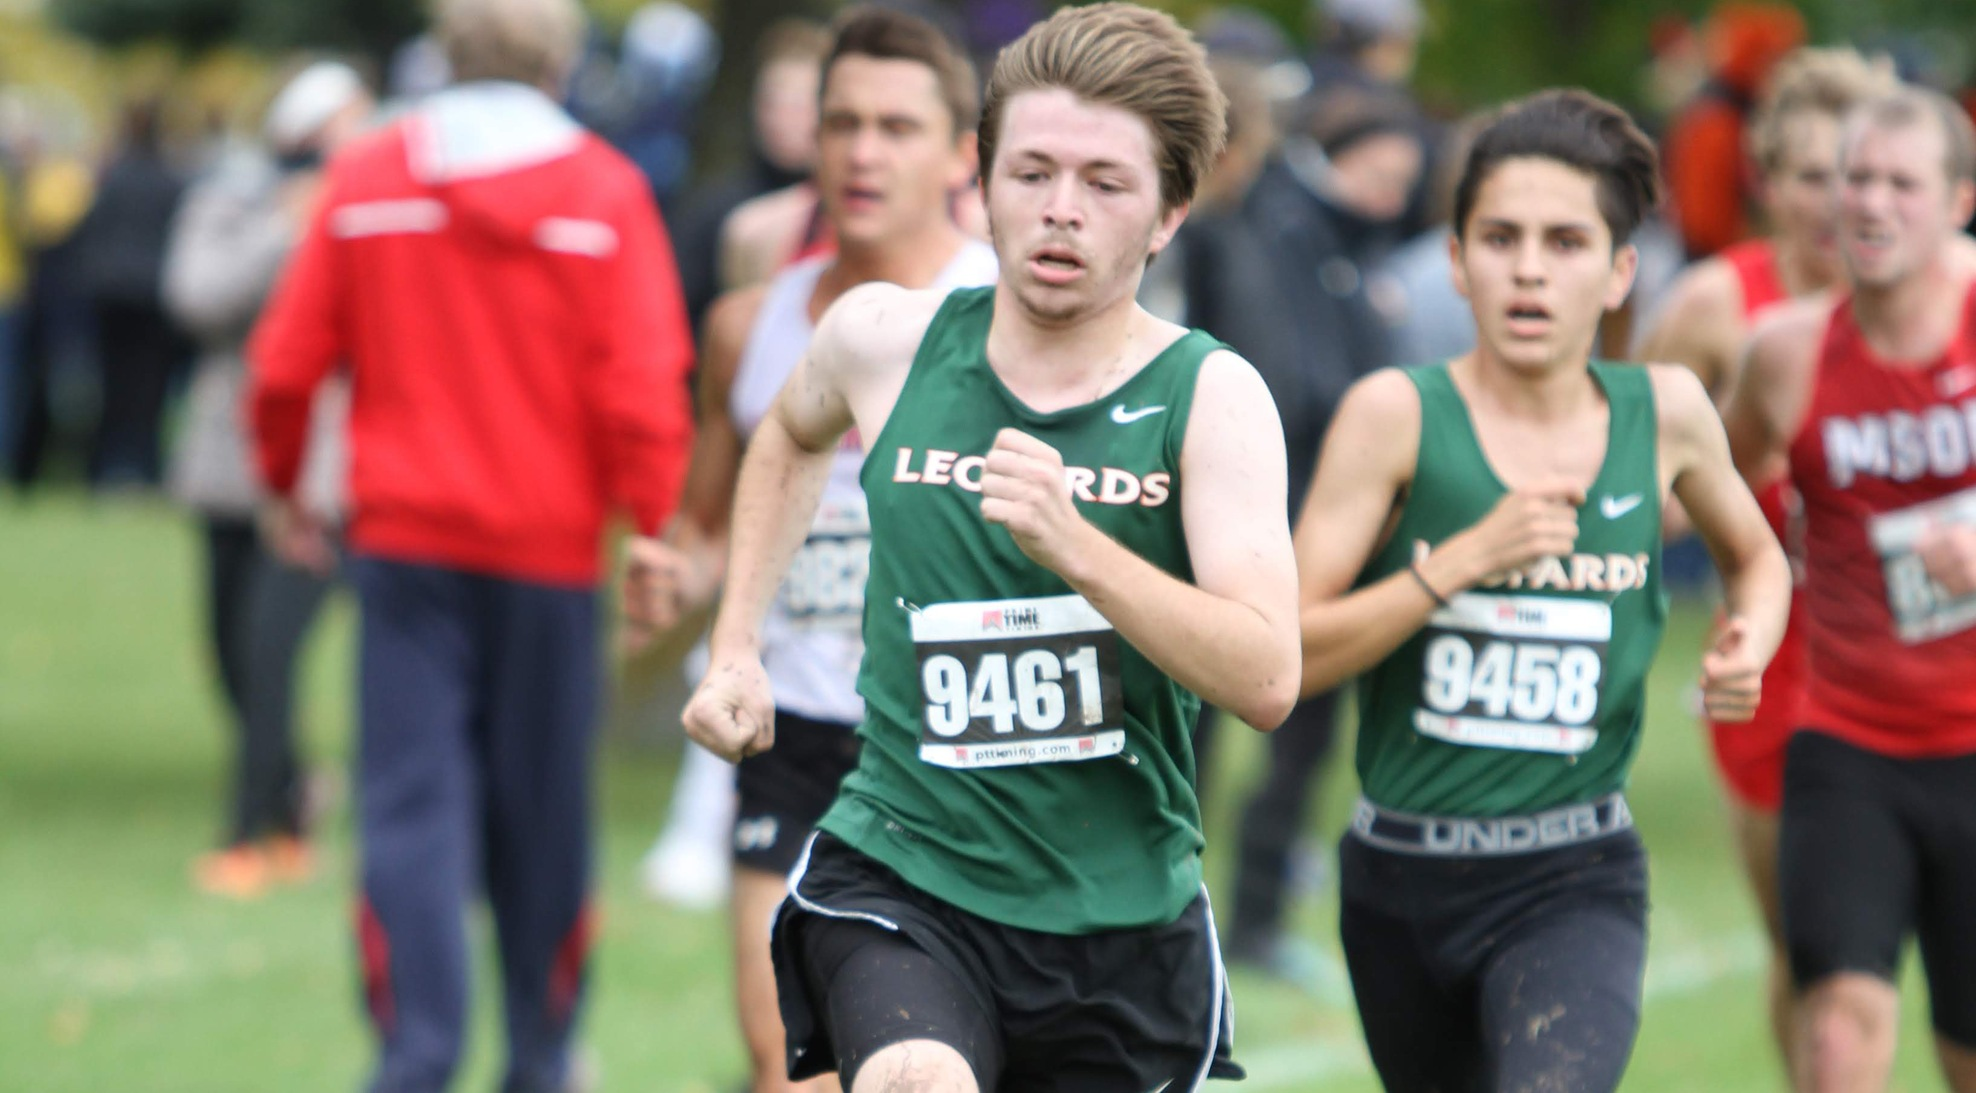 MXC Competes Against Top DIII Cross Country Programs